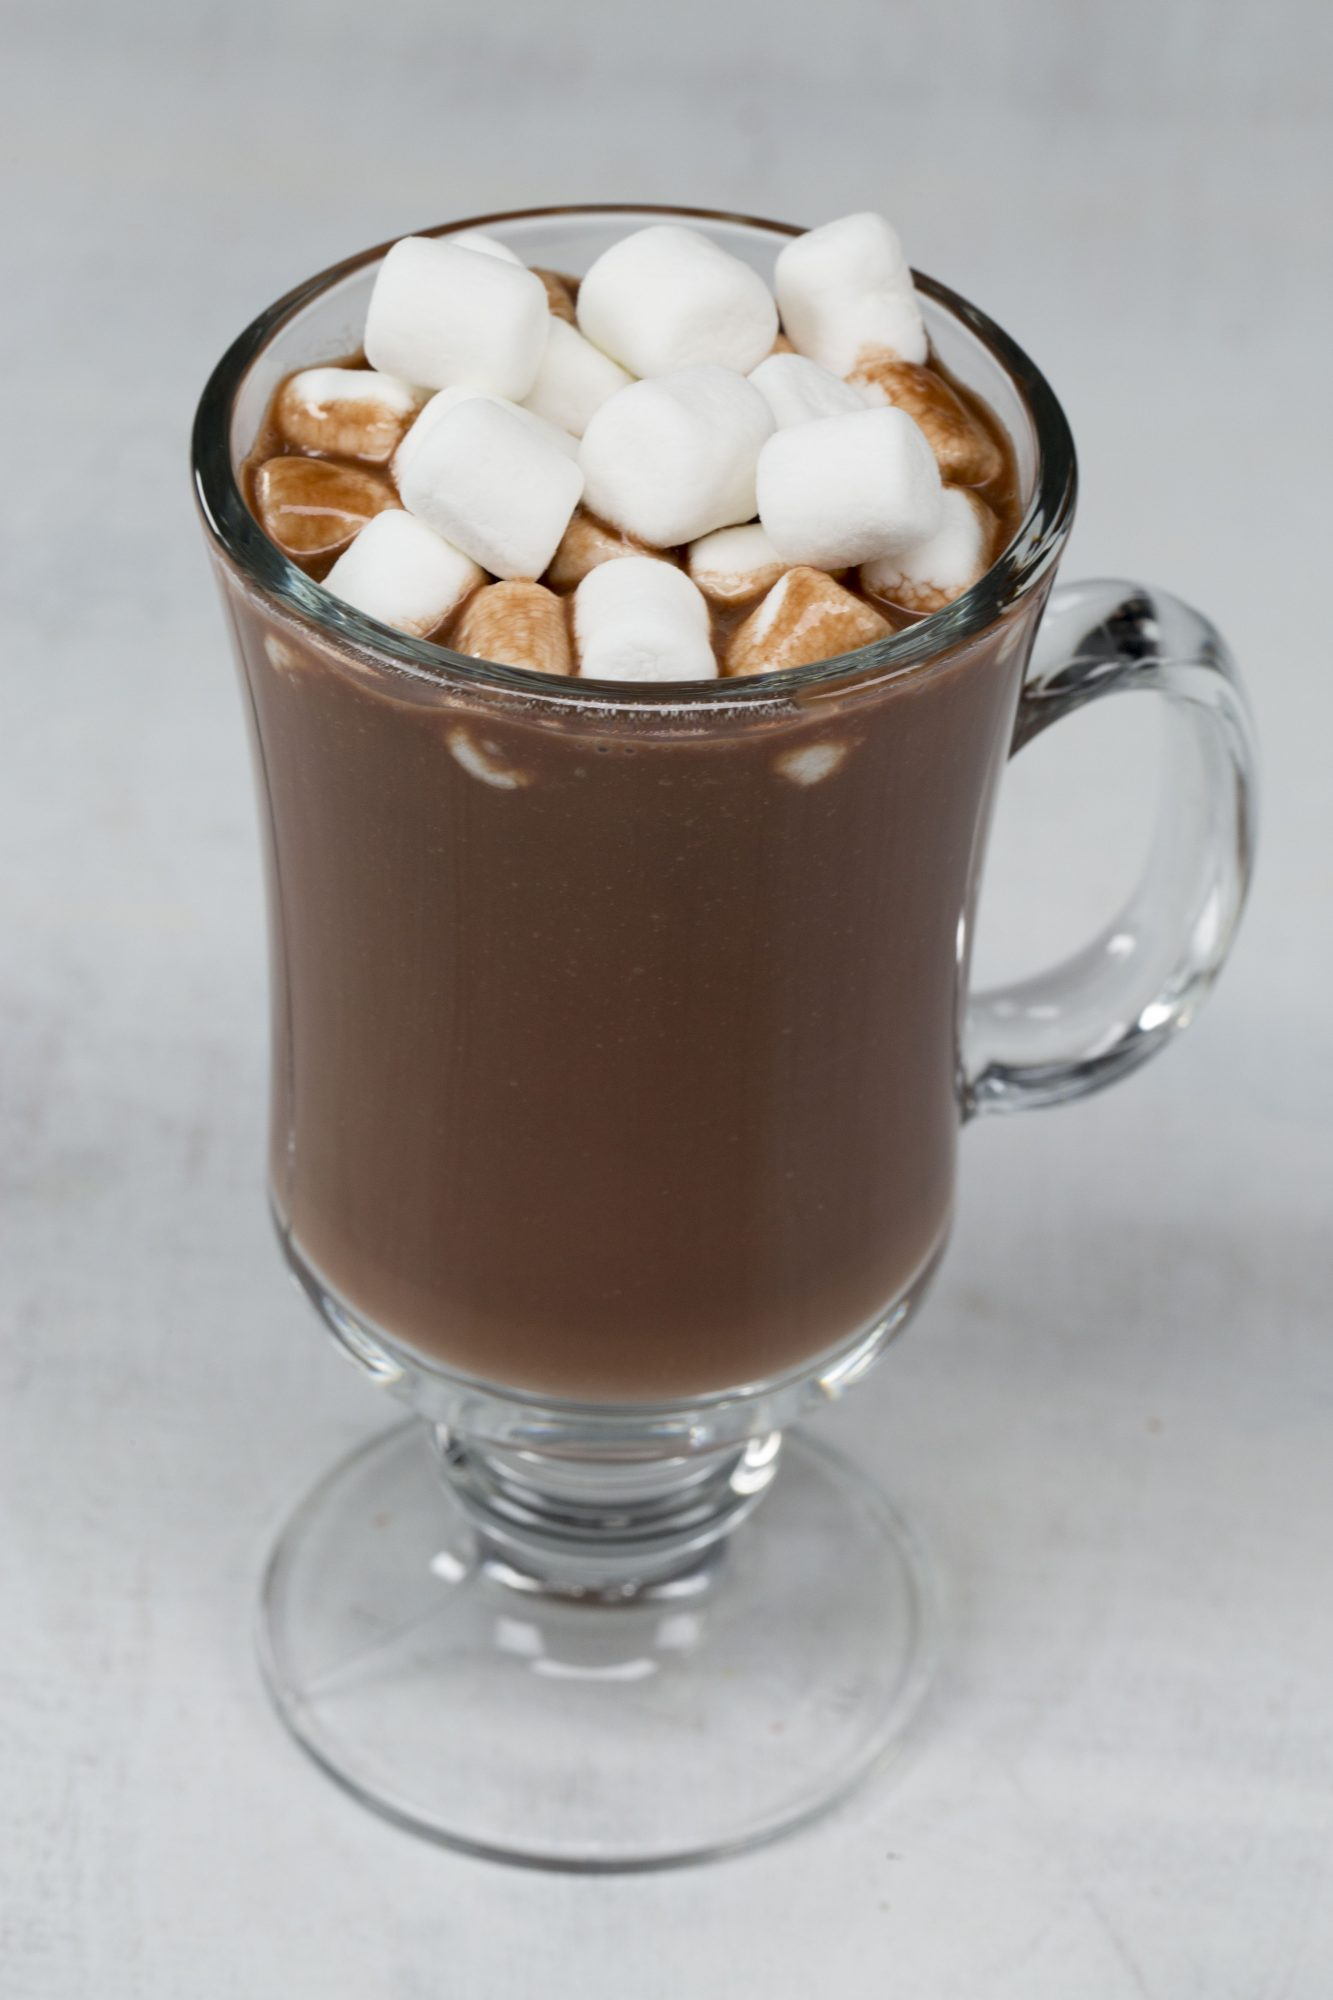 Creamy Dairy-Free Hot Chocolate image